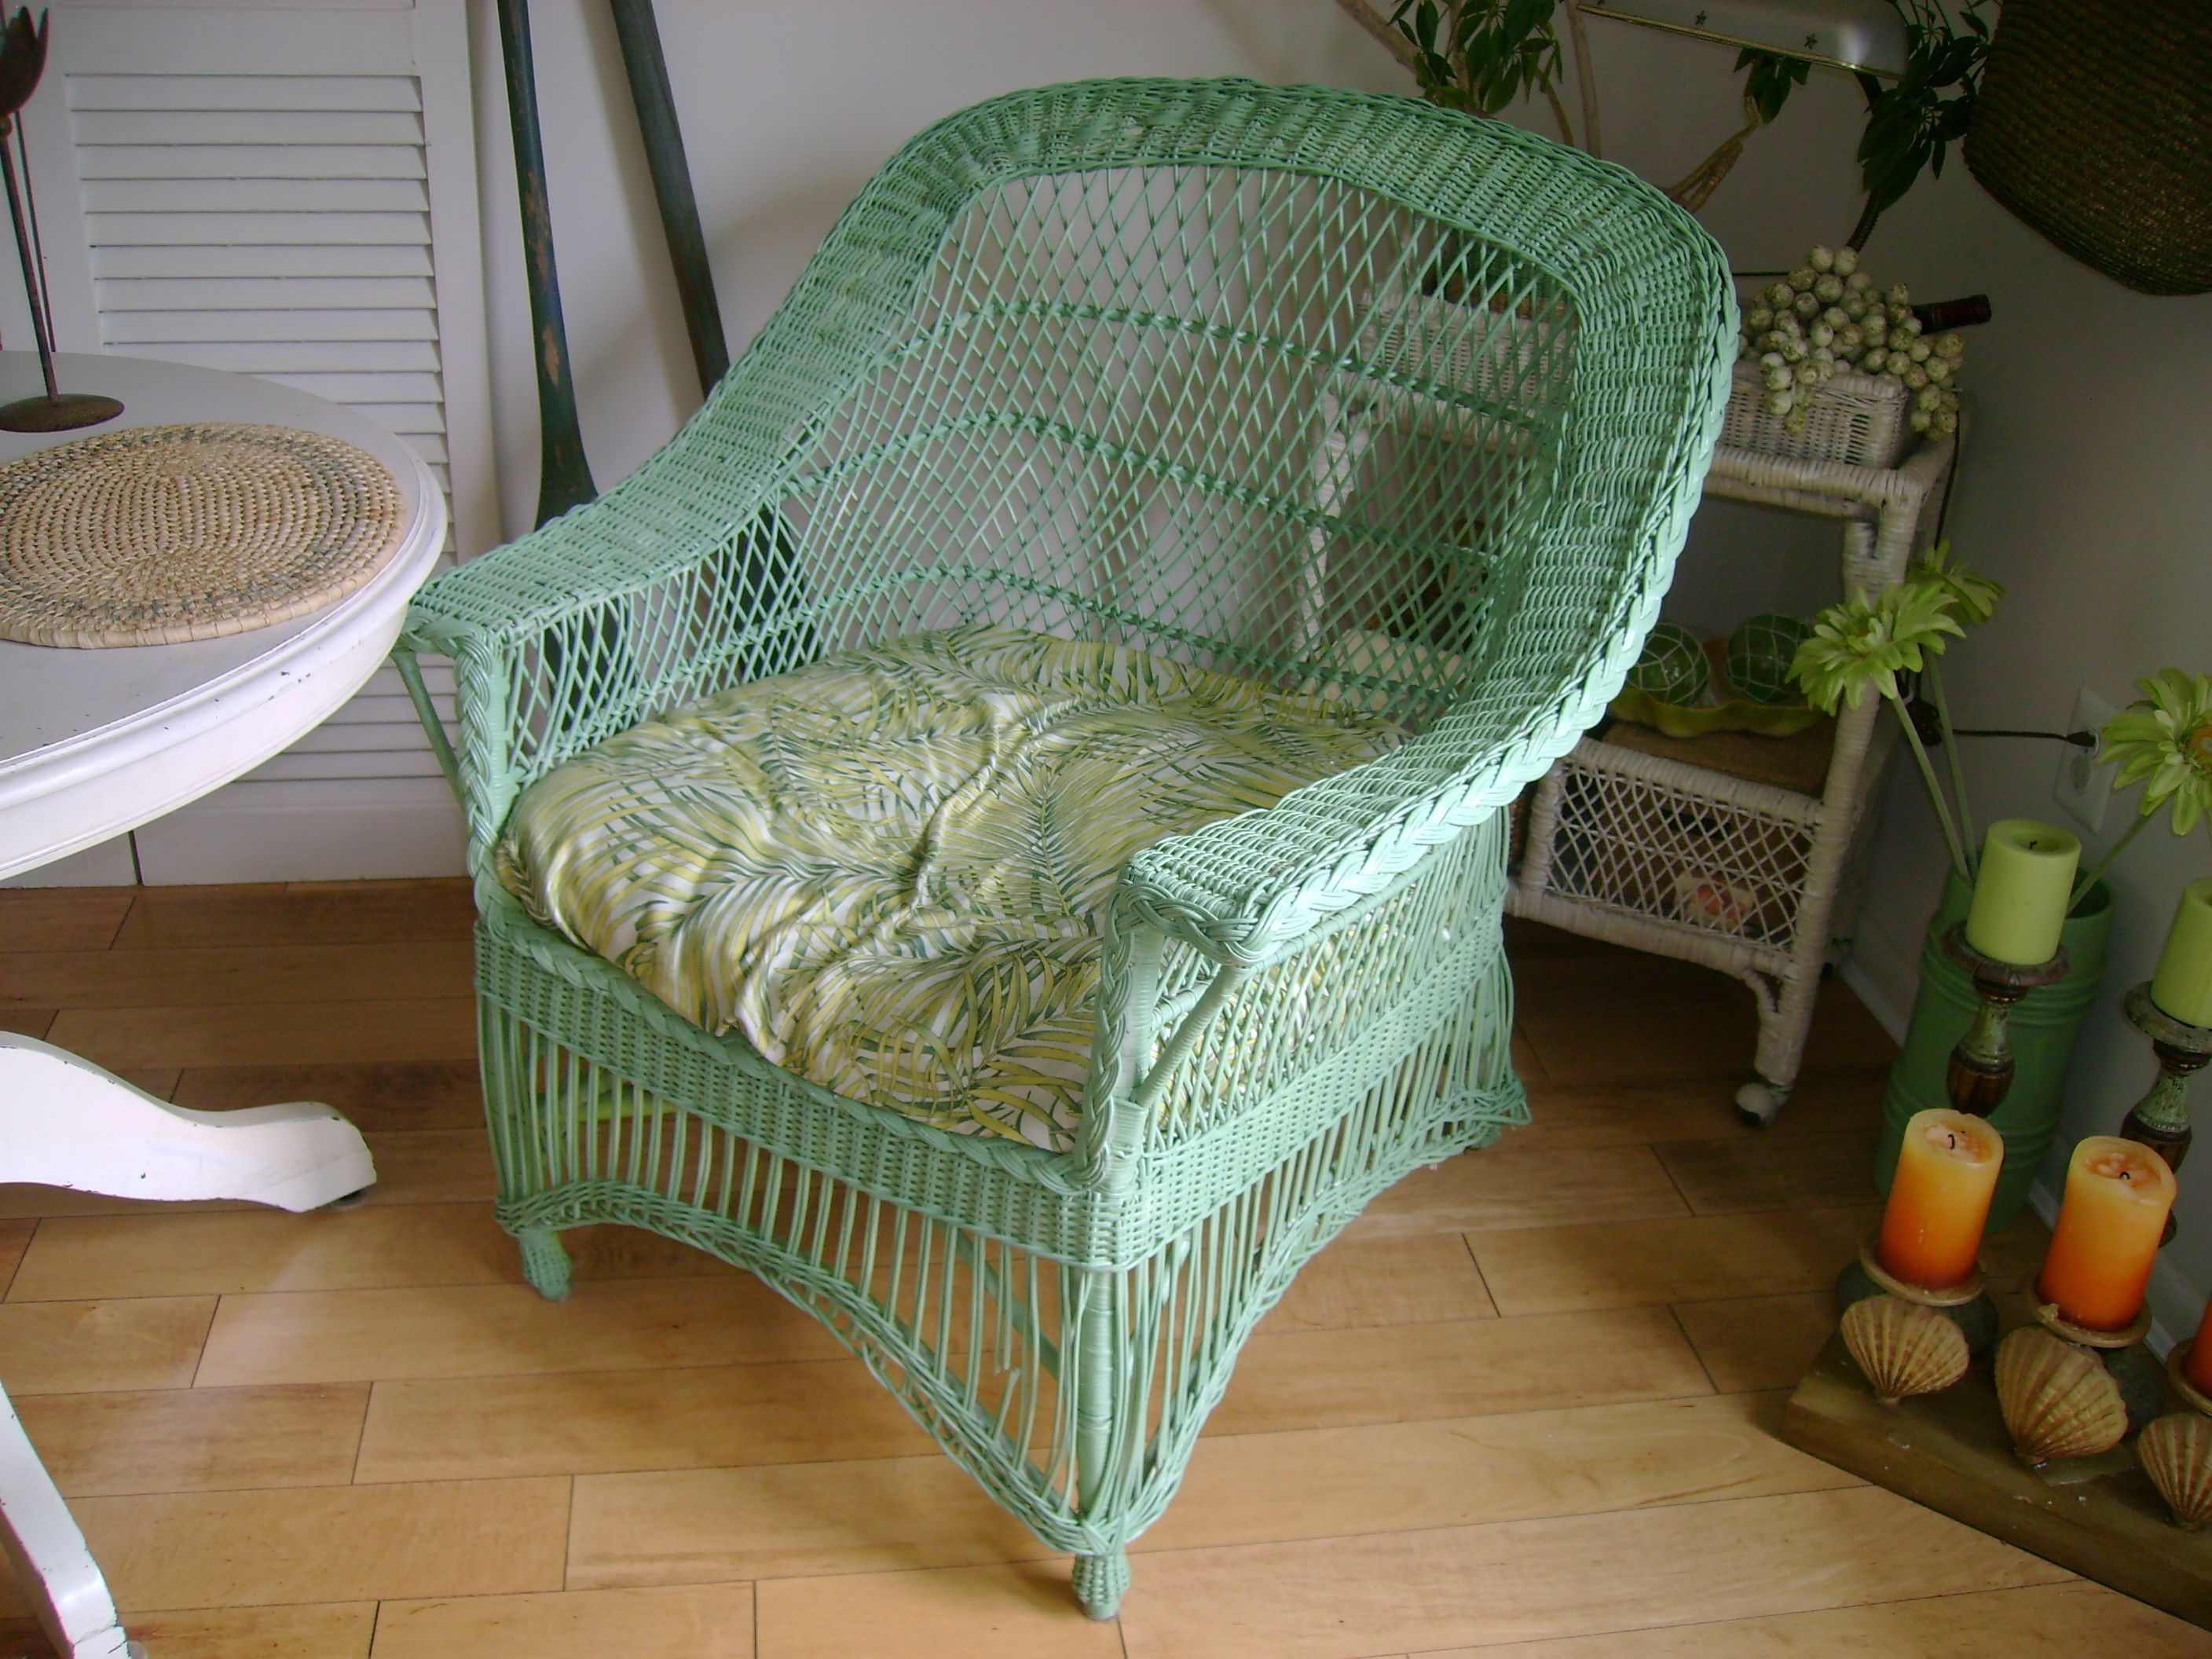 Green Painted Wicker Chair Wicker Chairs Wicker Furniture And Outdoor Furn